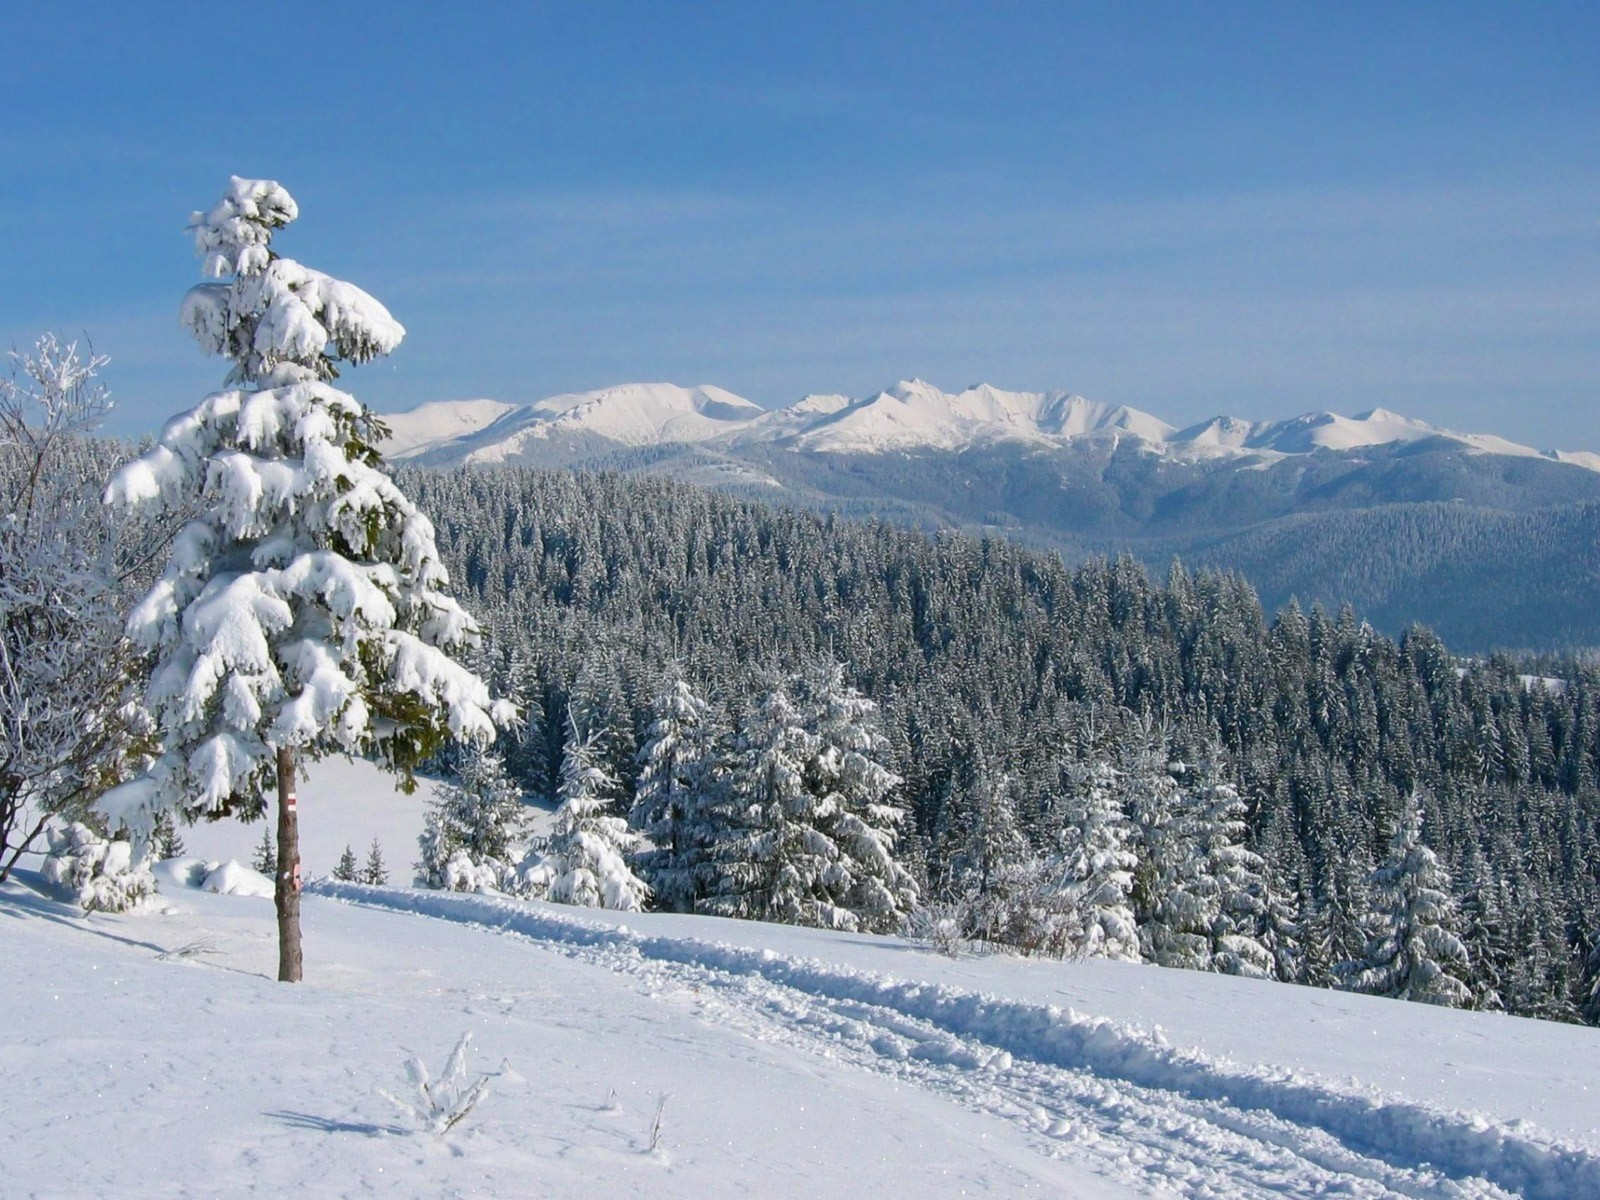 Landscapes snow forests trail HD Wallpaper